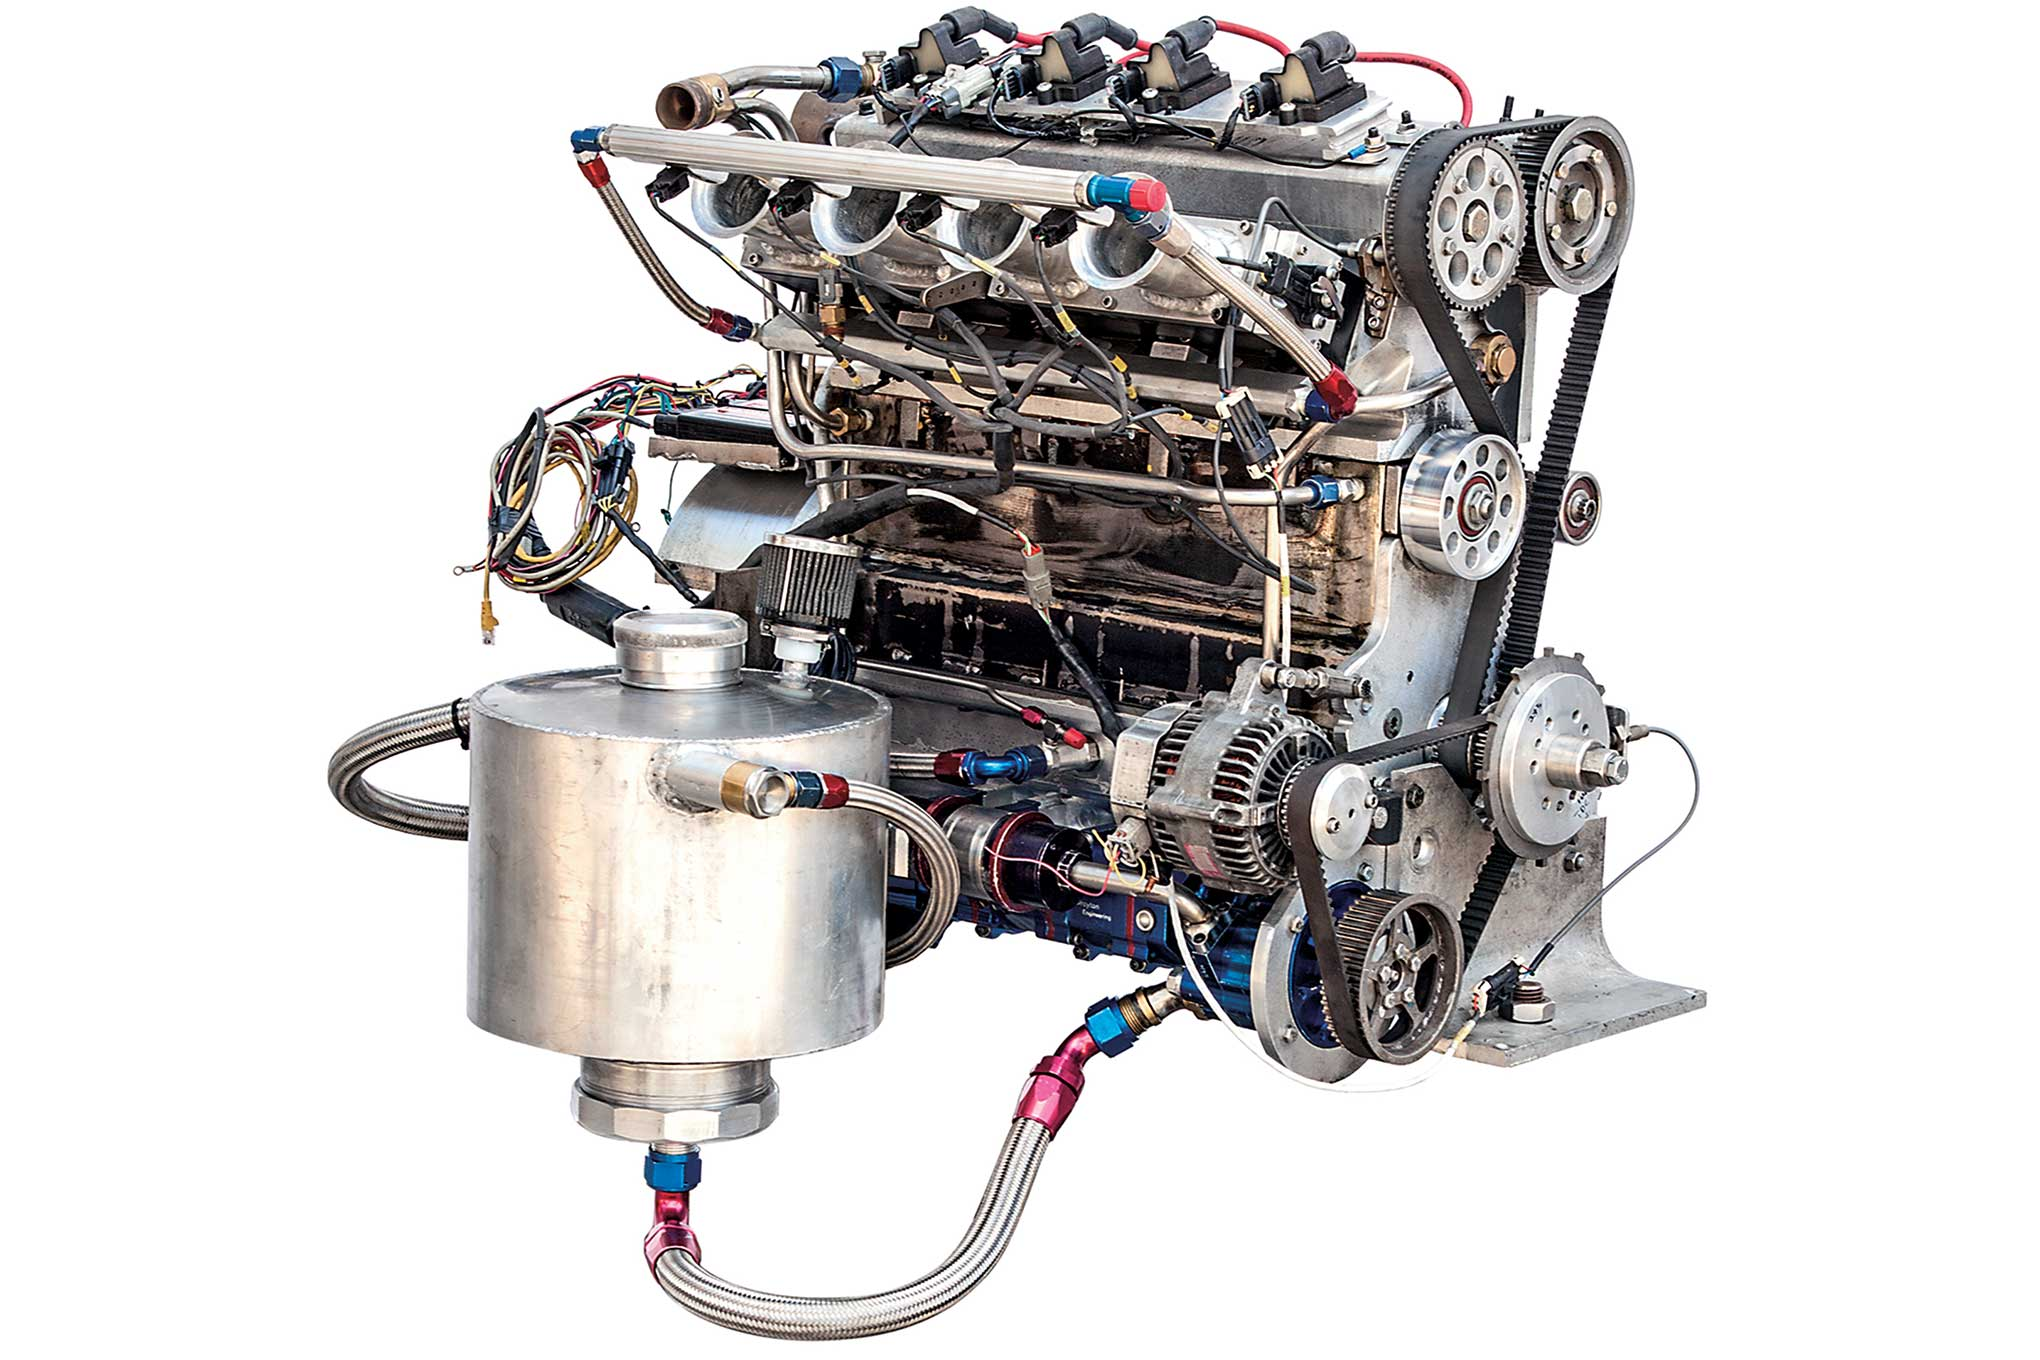 When no one builds the engine you need, build your own. That's what Pete Aardema and team did.